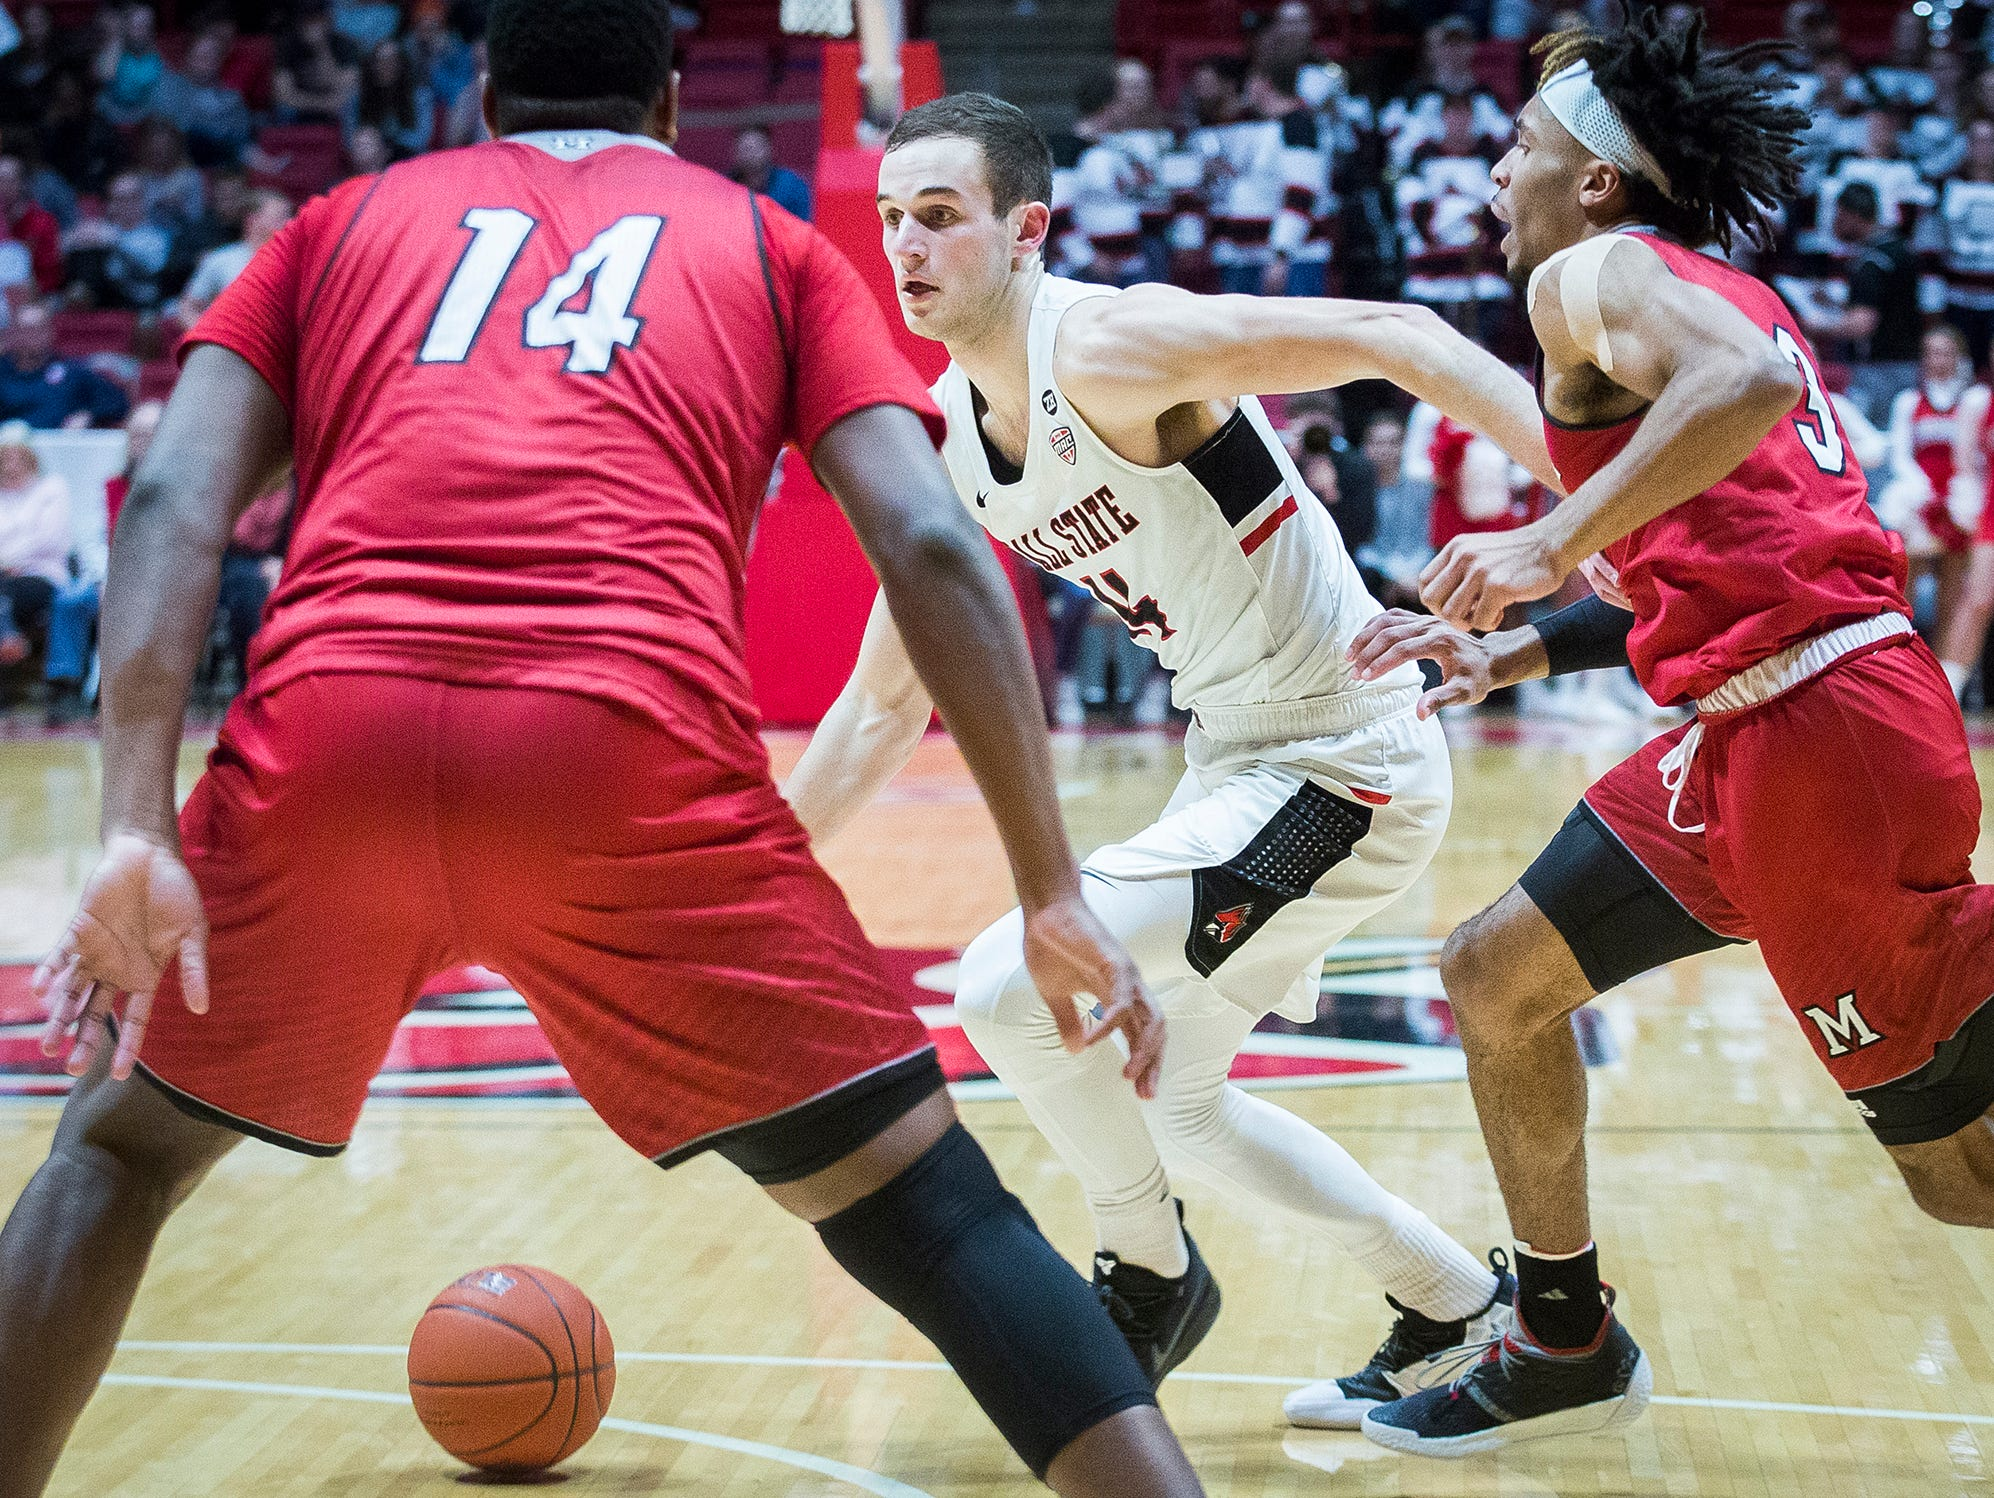 Ball State faces off against Miami during their game at Worthen Arena Tuesday, Jan. 22, 2018.